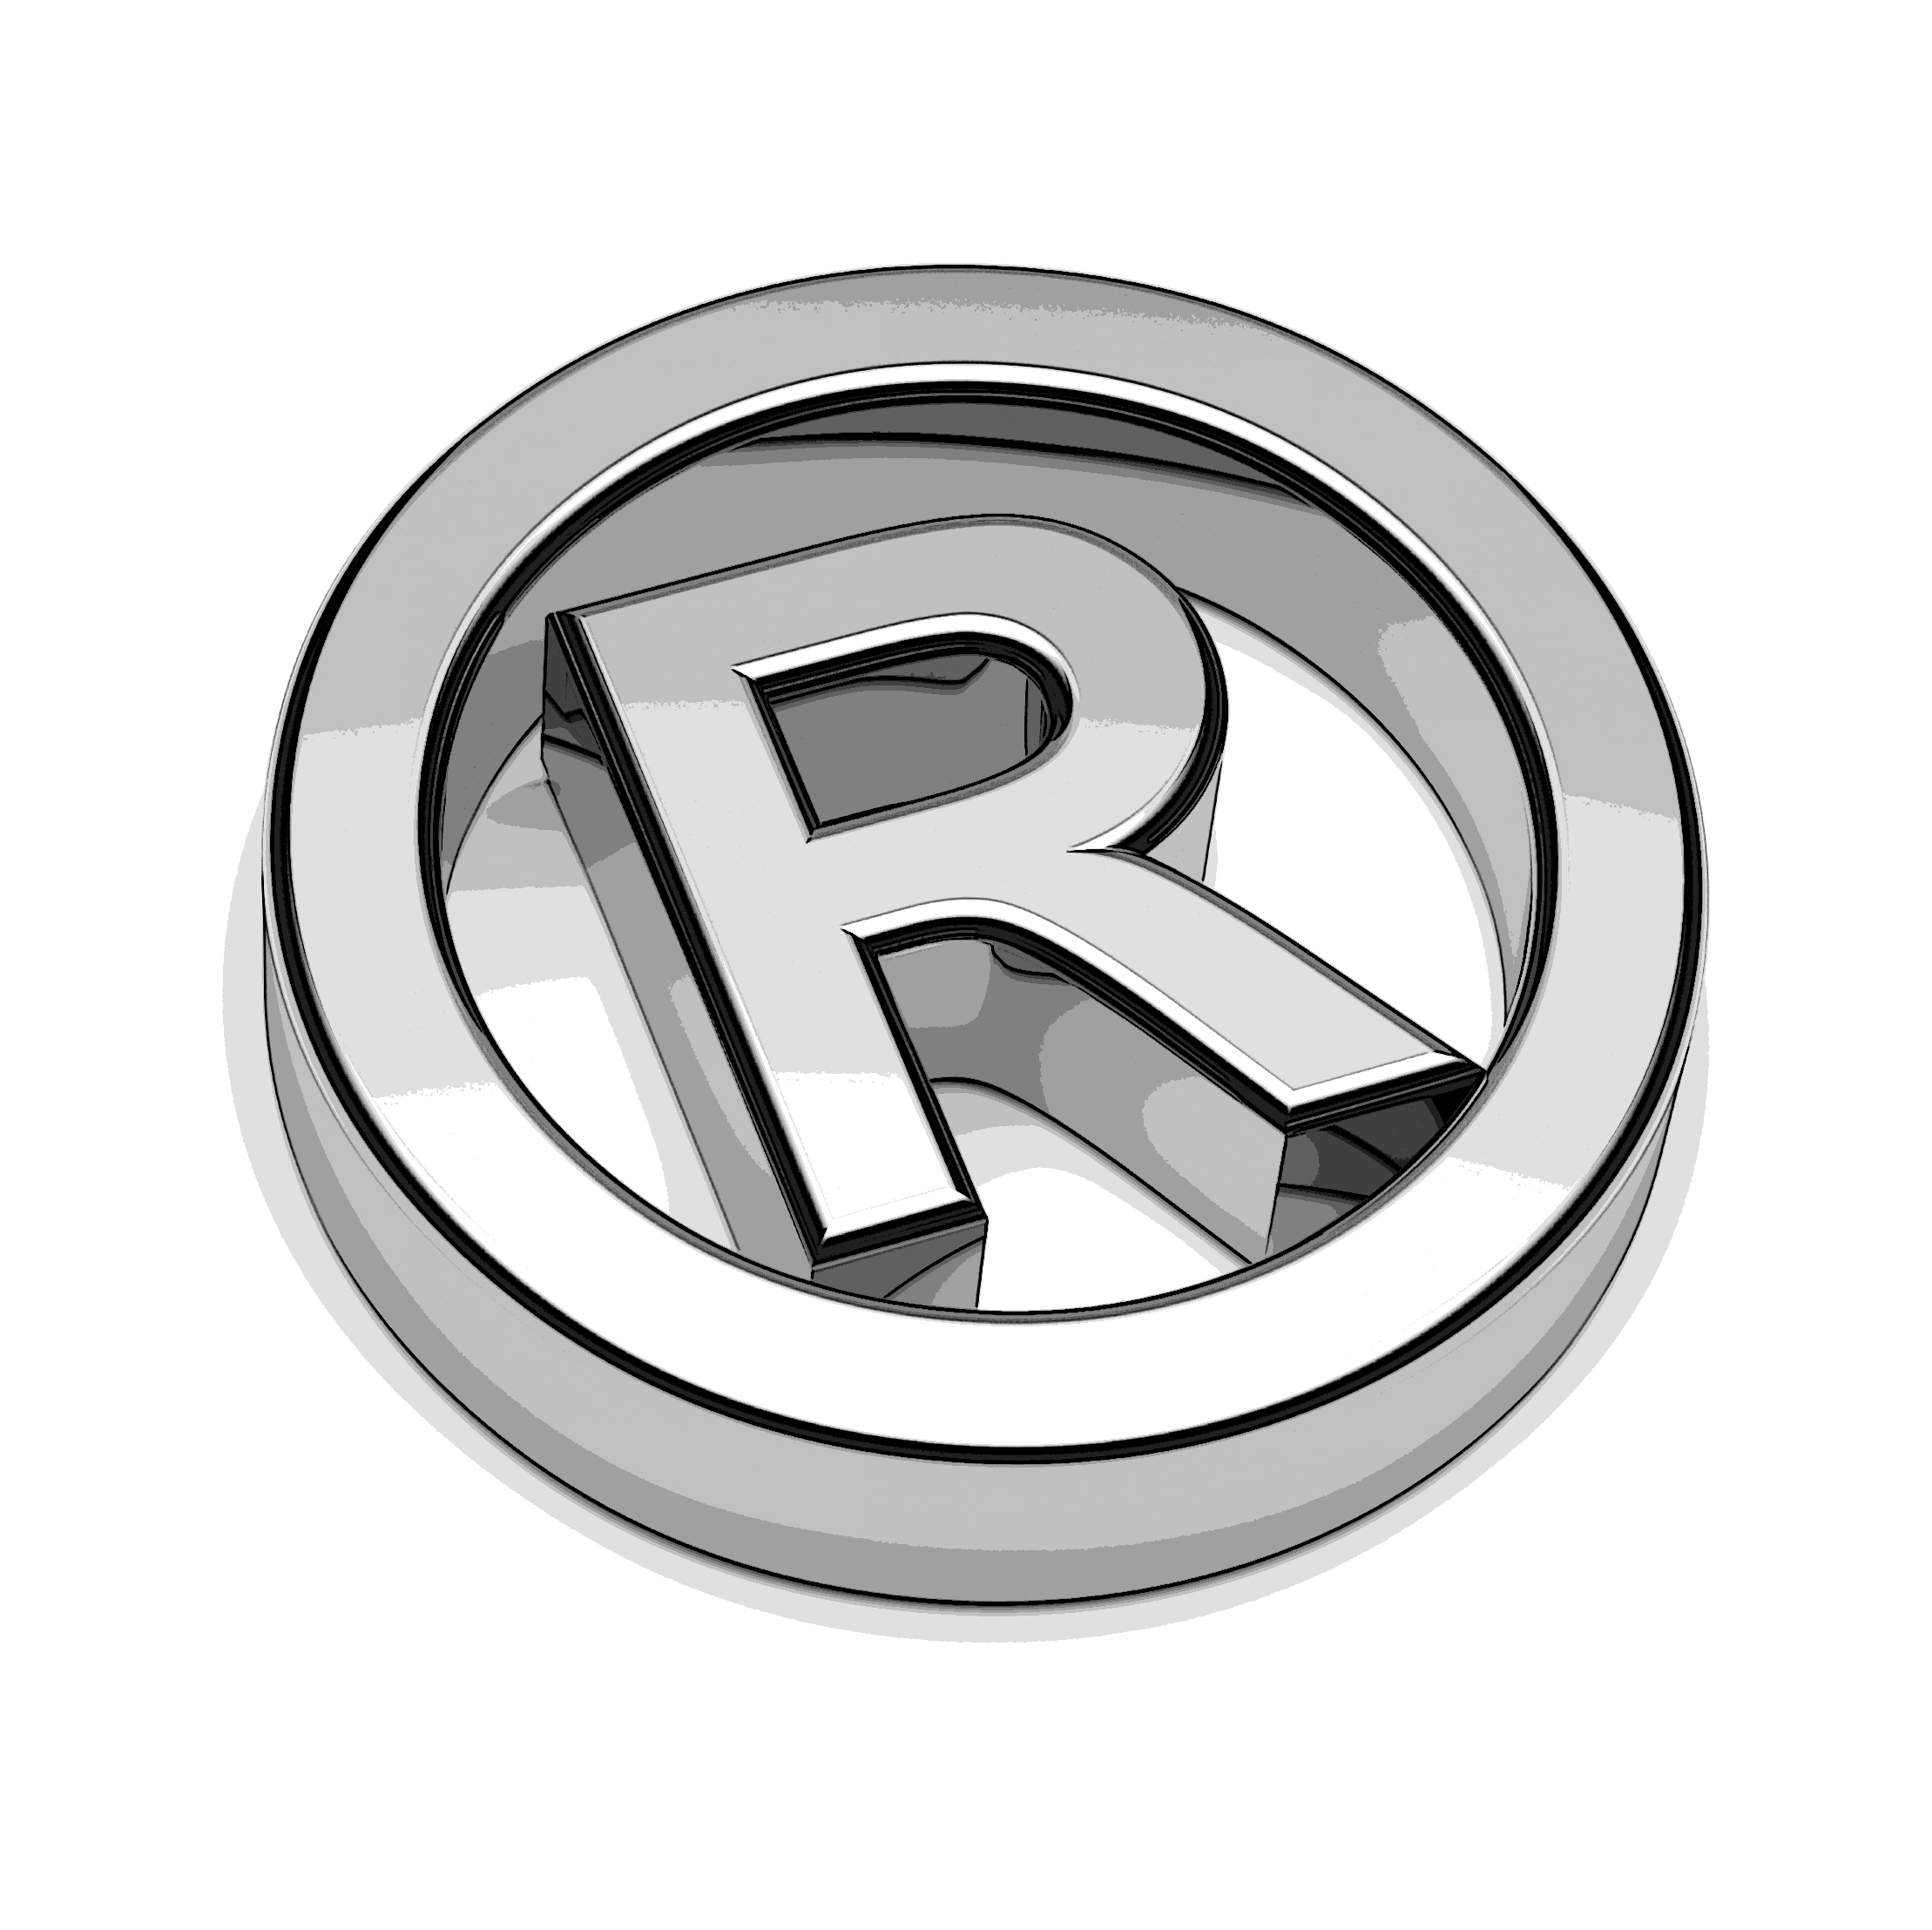 Symbols and disclaimers crafts law symbols and disclaimers trademark chrome sign biocorpaavc